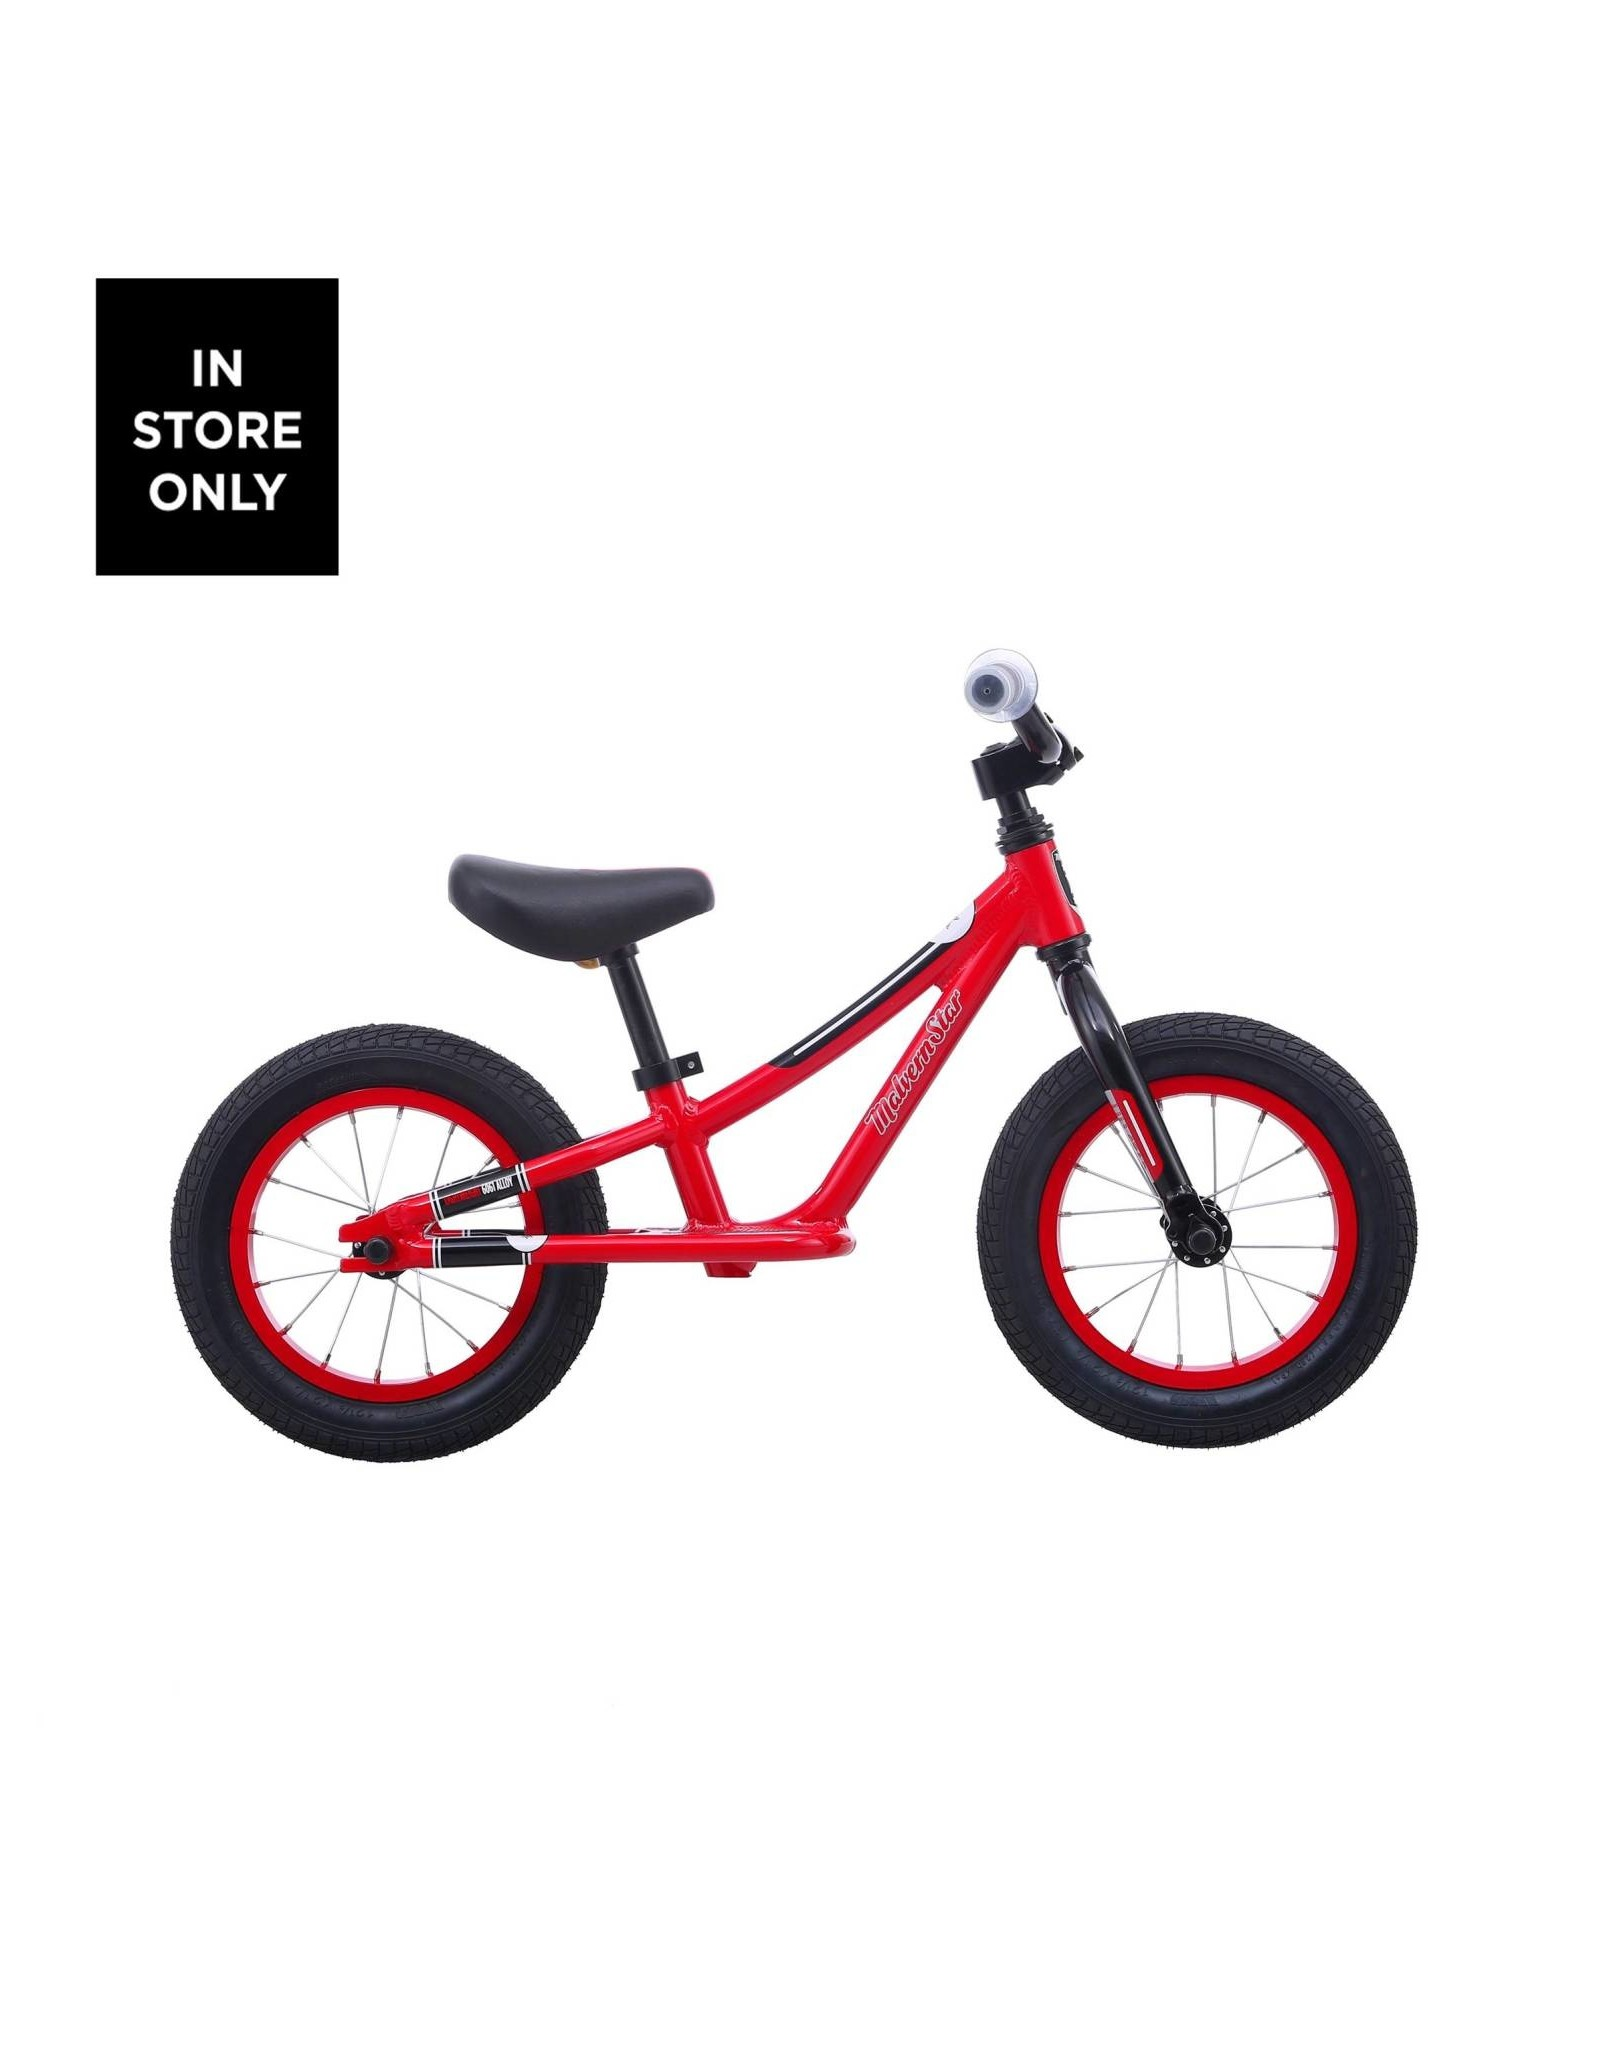 "MALVERN STAR Malvern Star Lilstar 12"" 2021 Red/Black"